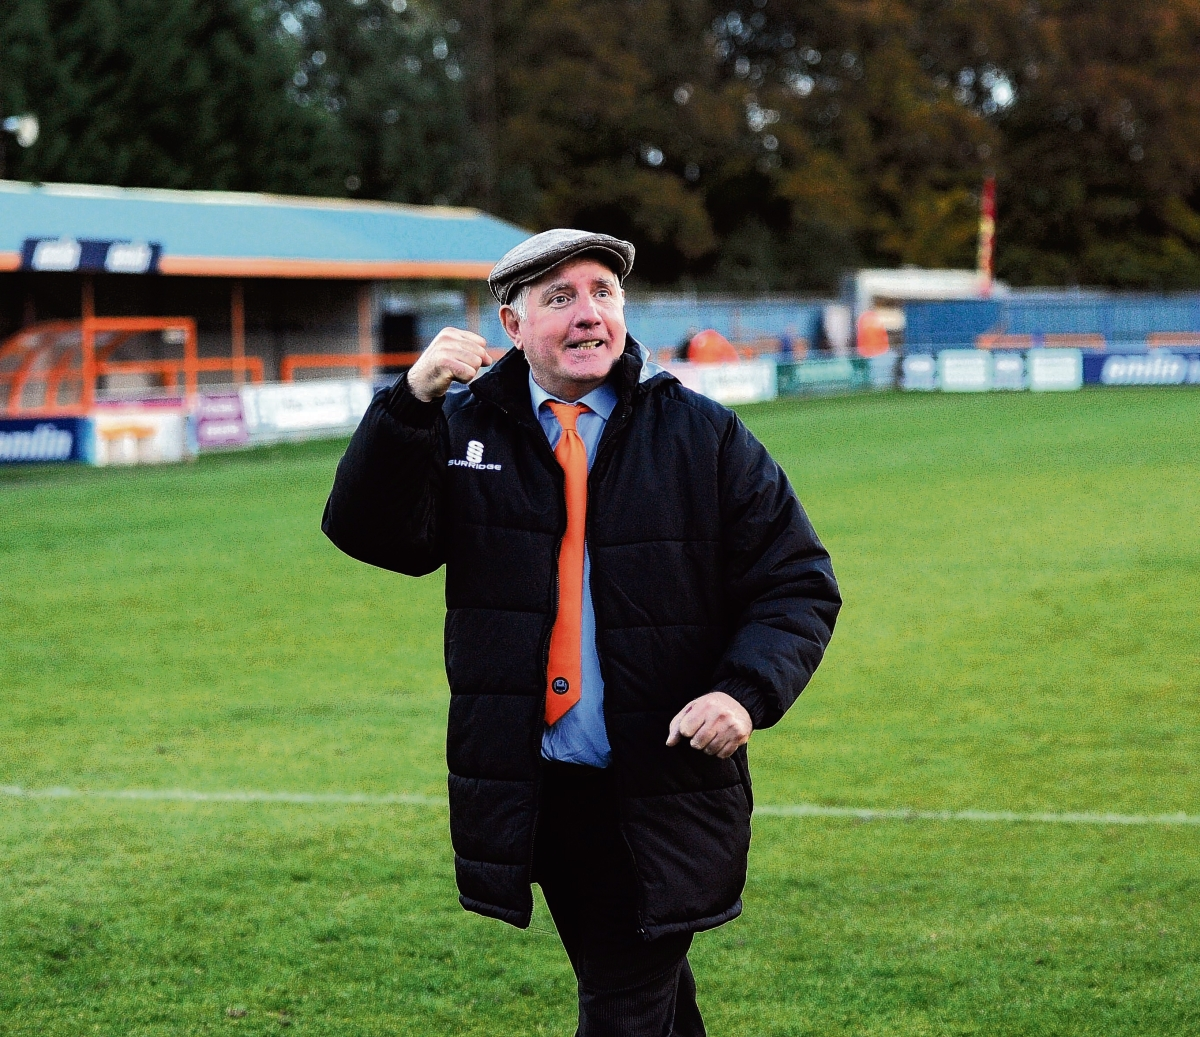 Devonshire's delight as Braintree do the double over Wrexham